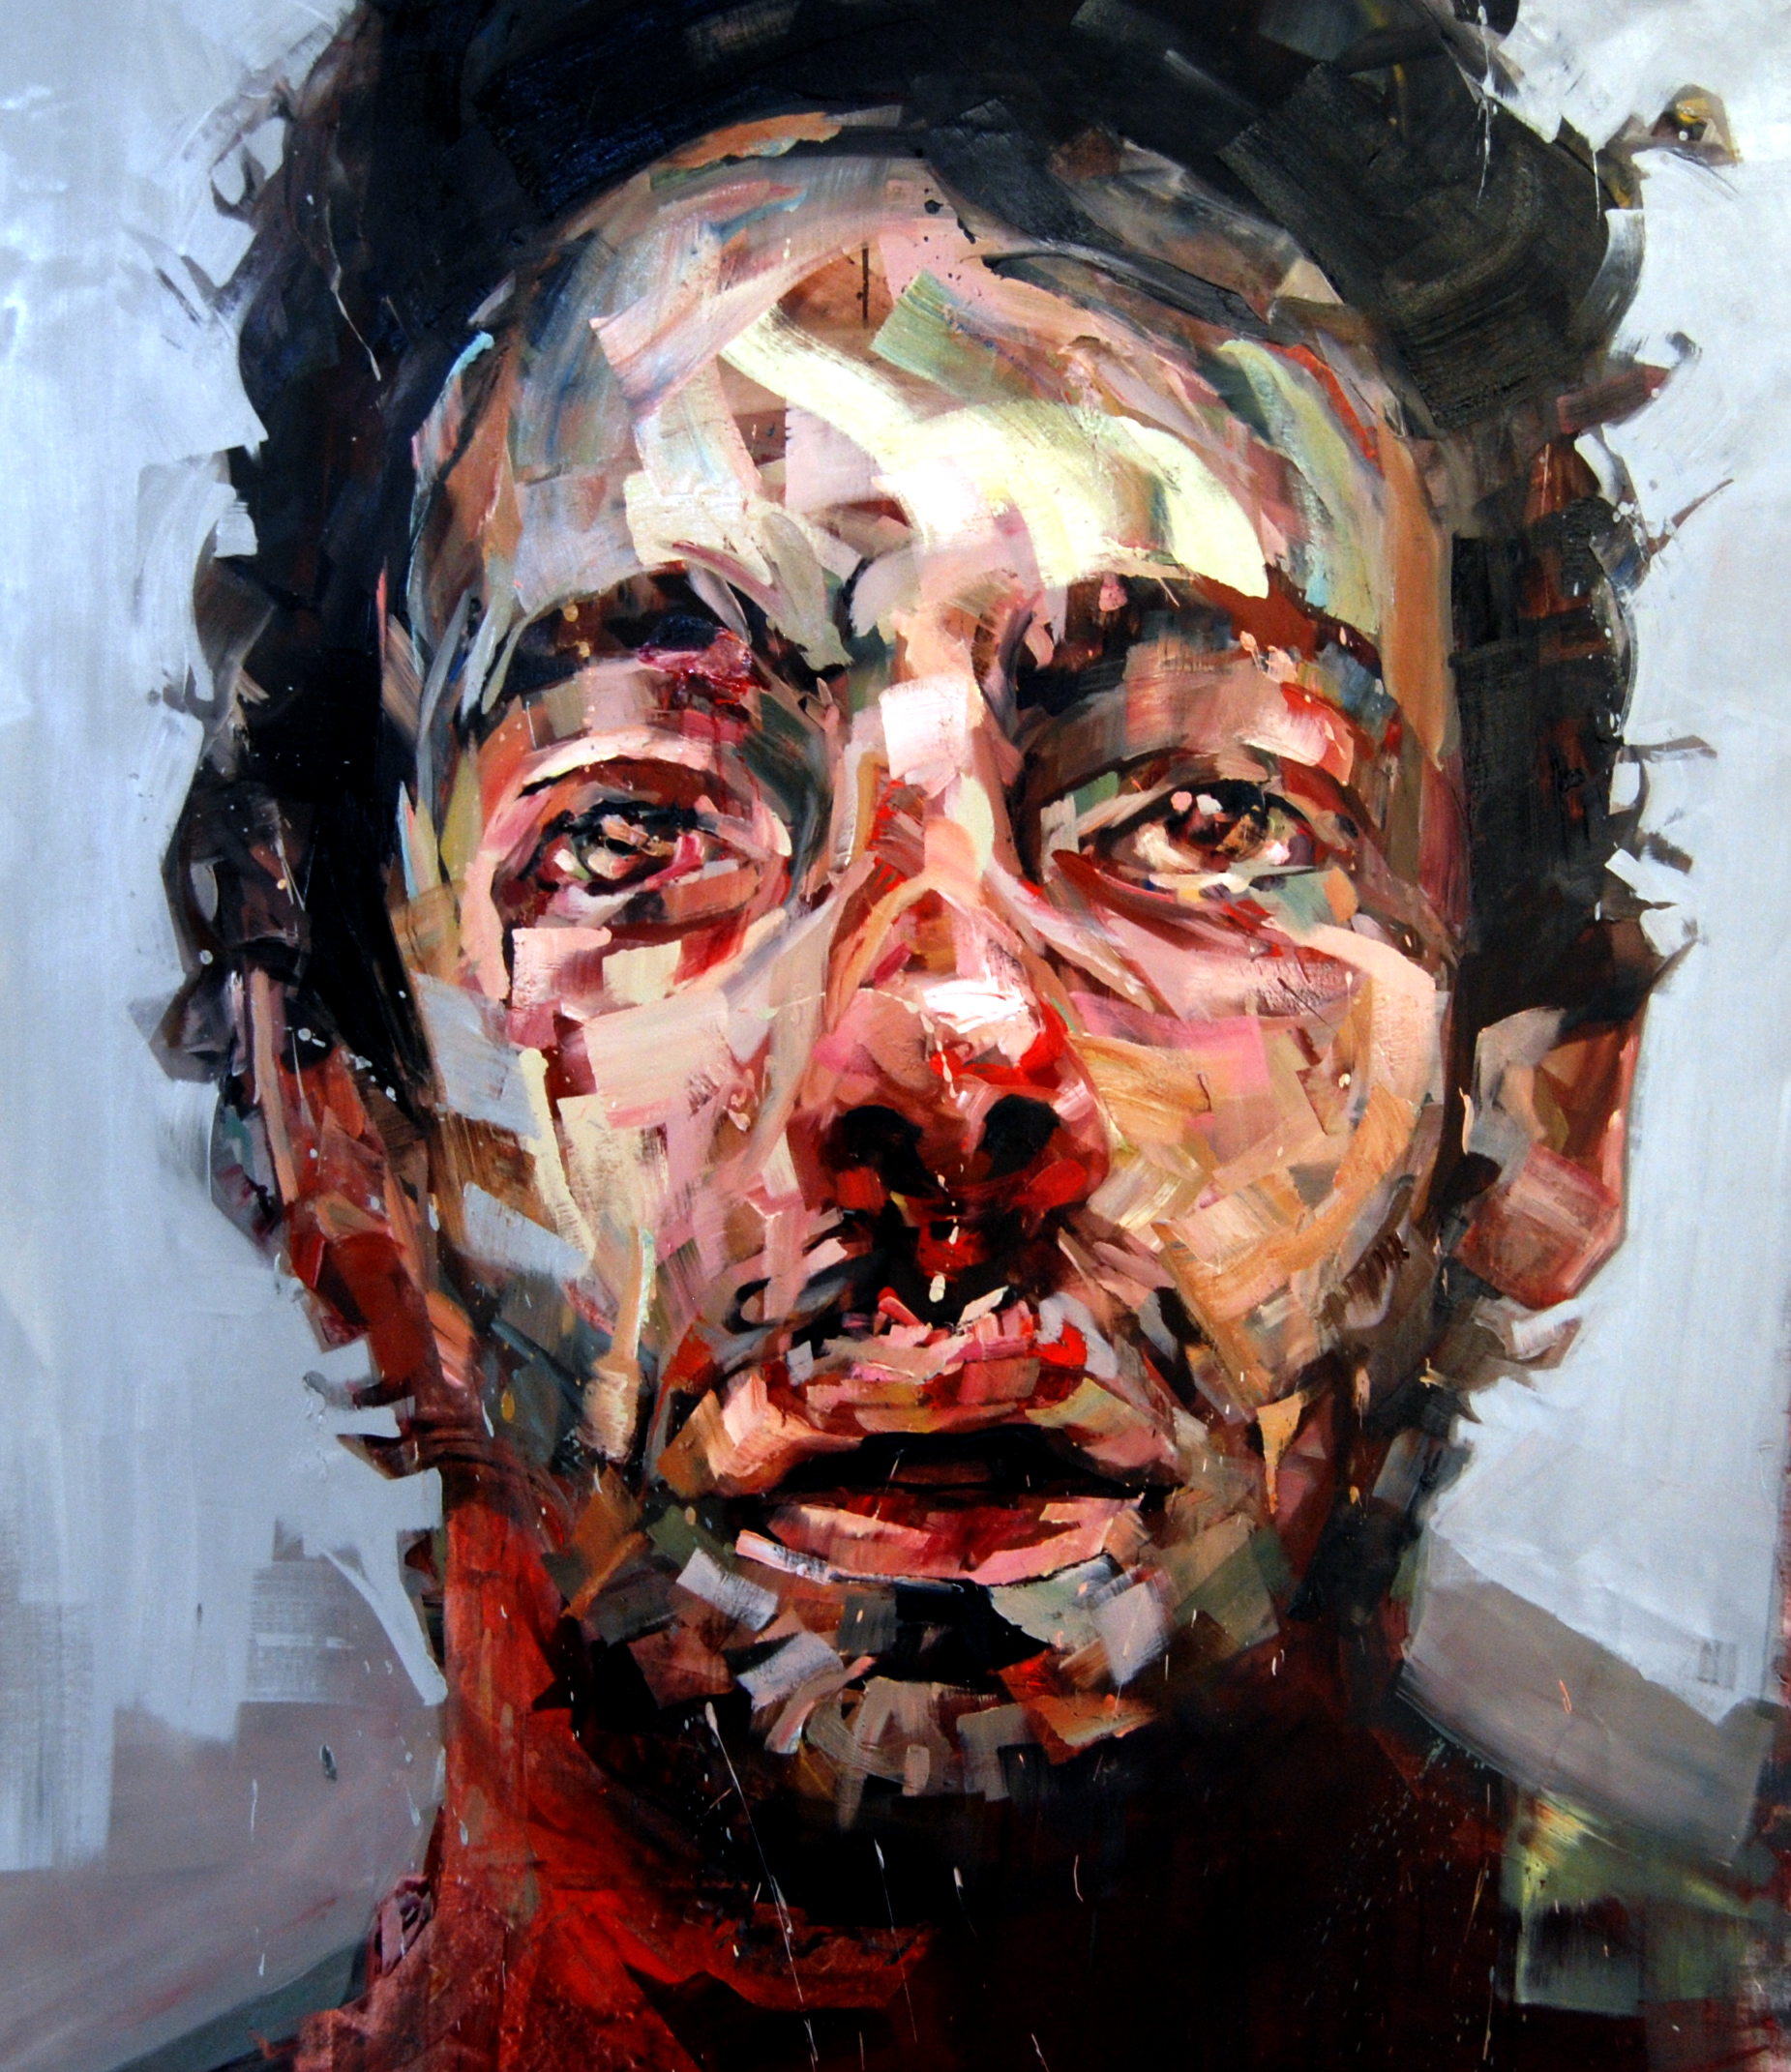 Andrew Salgado - If One Man's Joy is Another Man's Sadness (2012 - Beers.Lambert Contemporary)